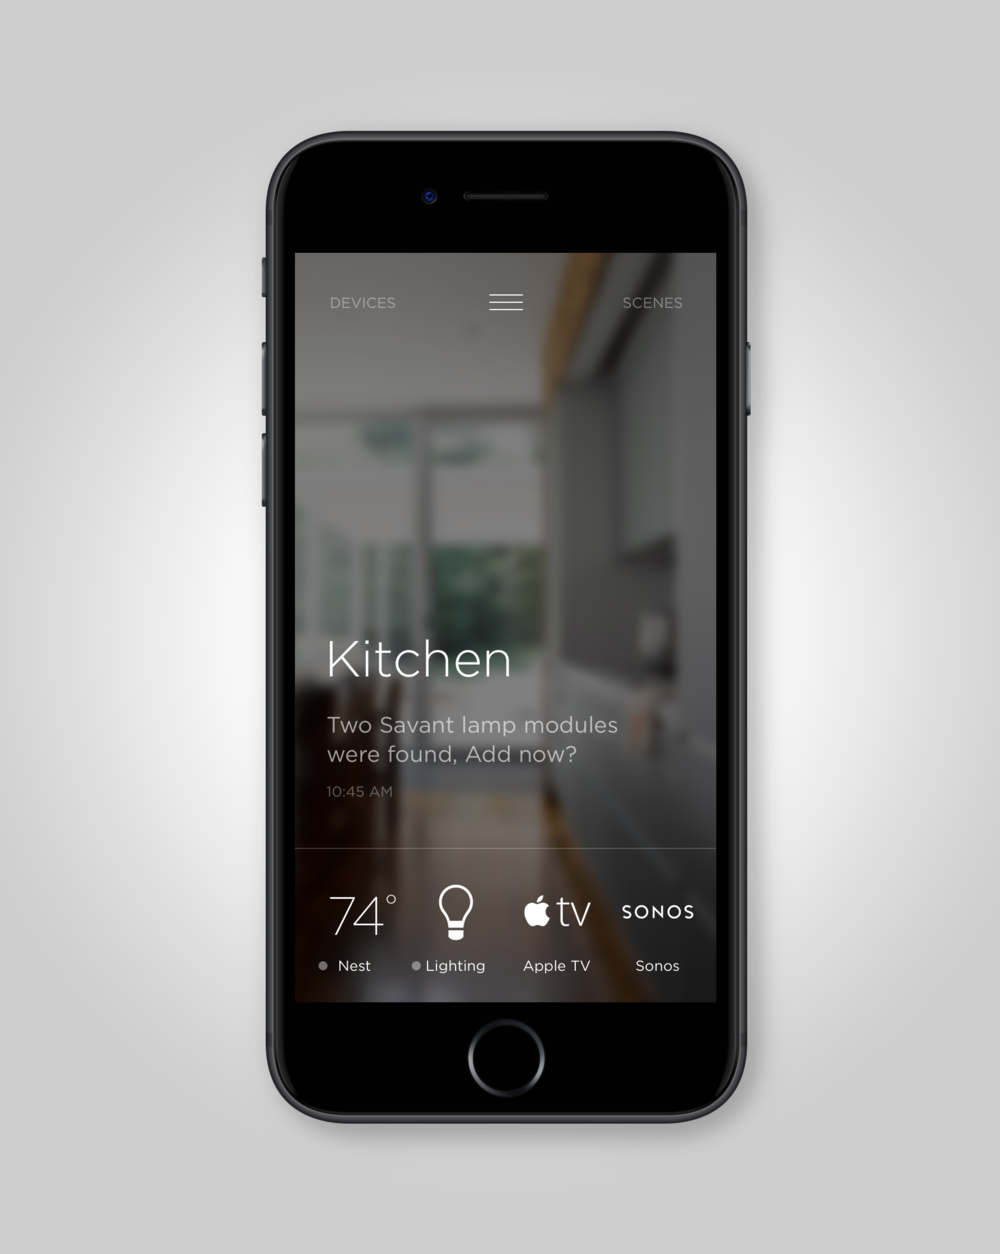 Iphone Kitchen.png